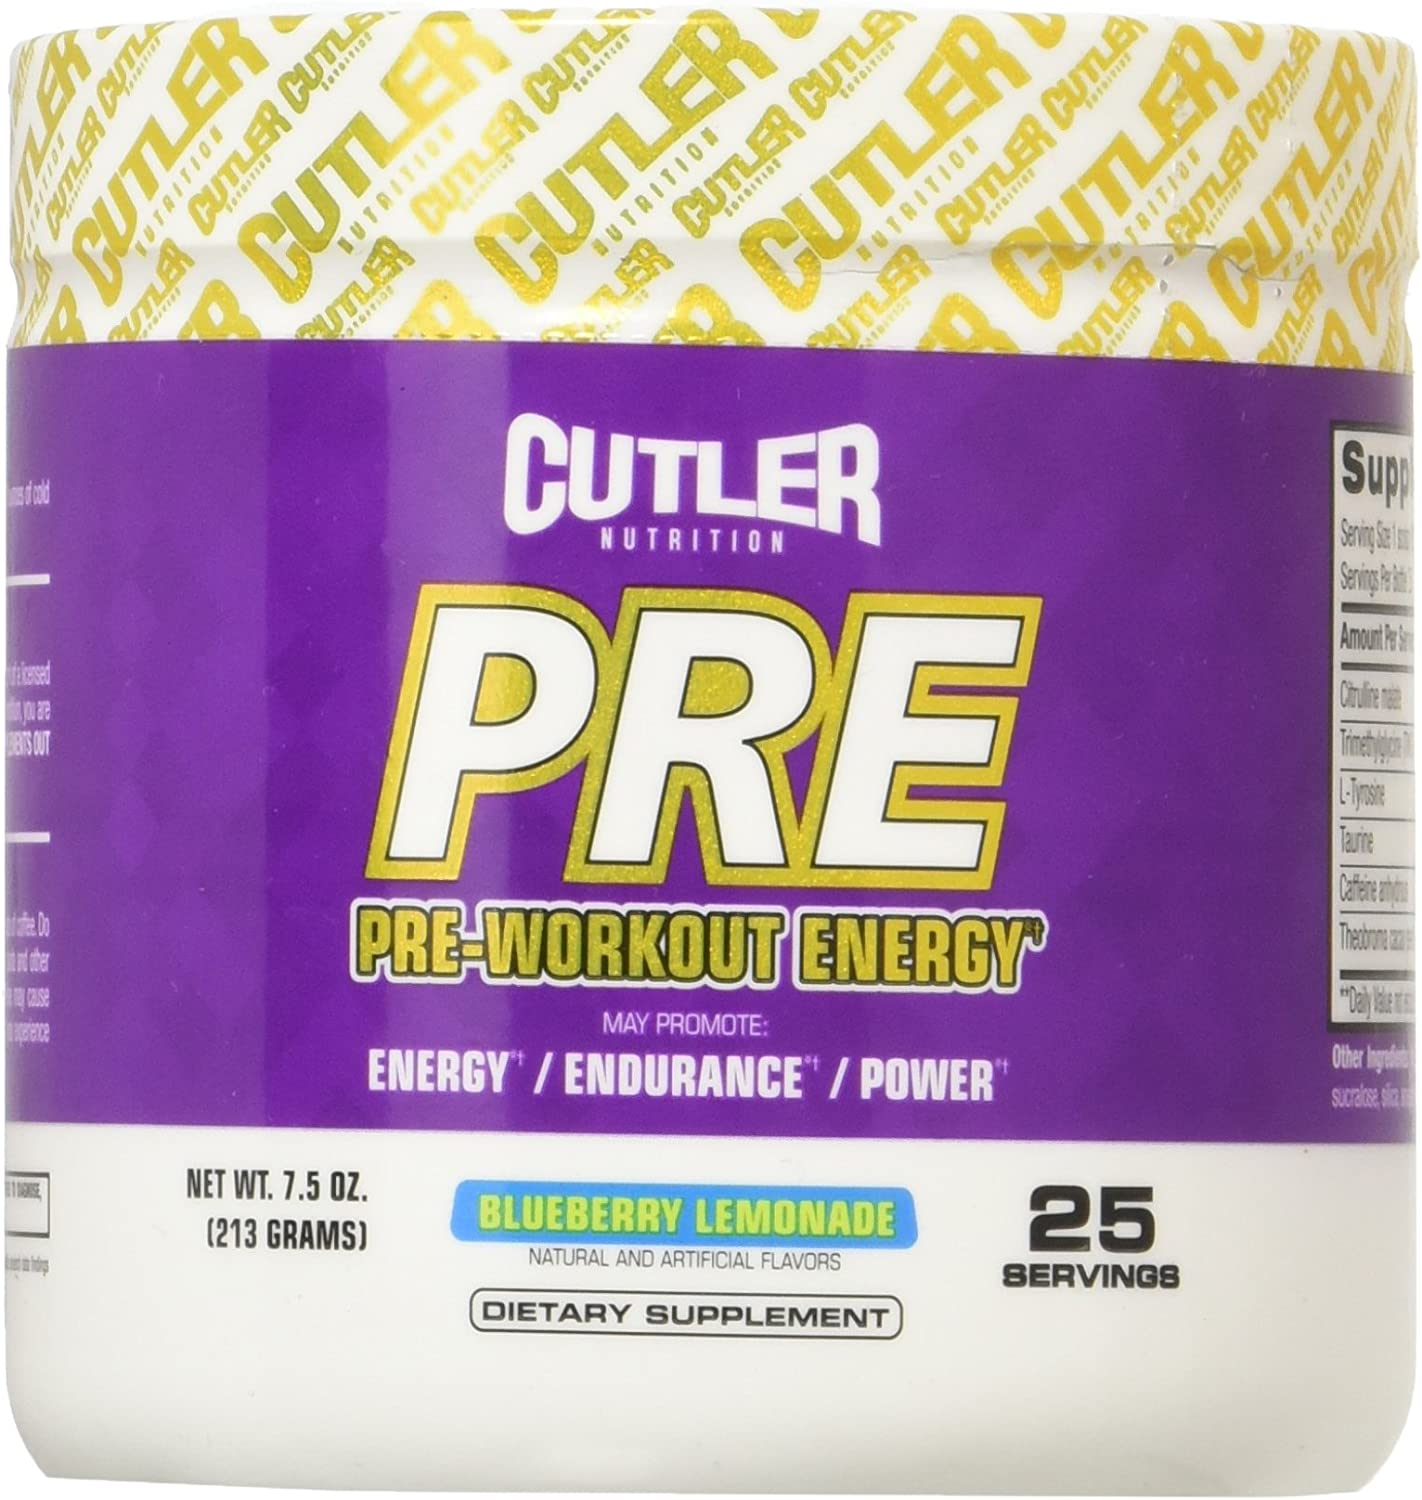 Cutler Nutrition Pre-Workout Energy Blueberry Powder Classic Low price Lemonade